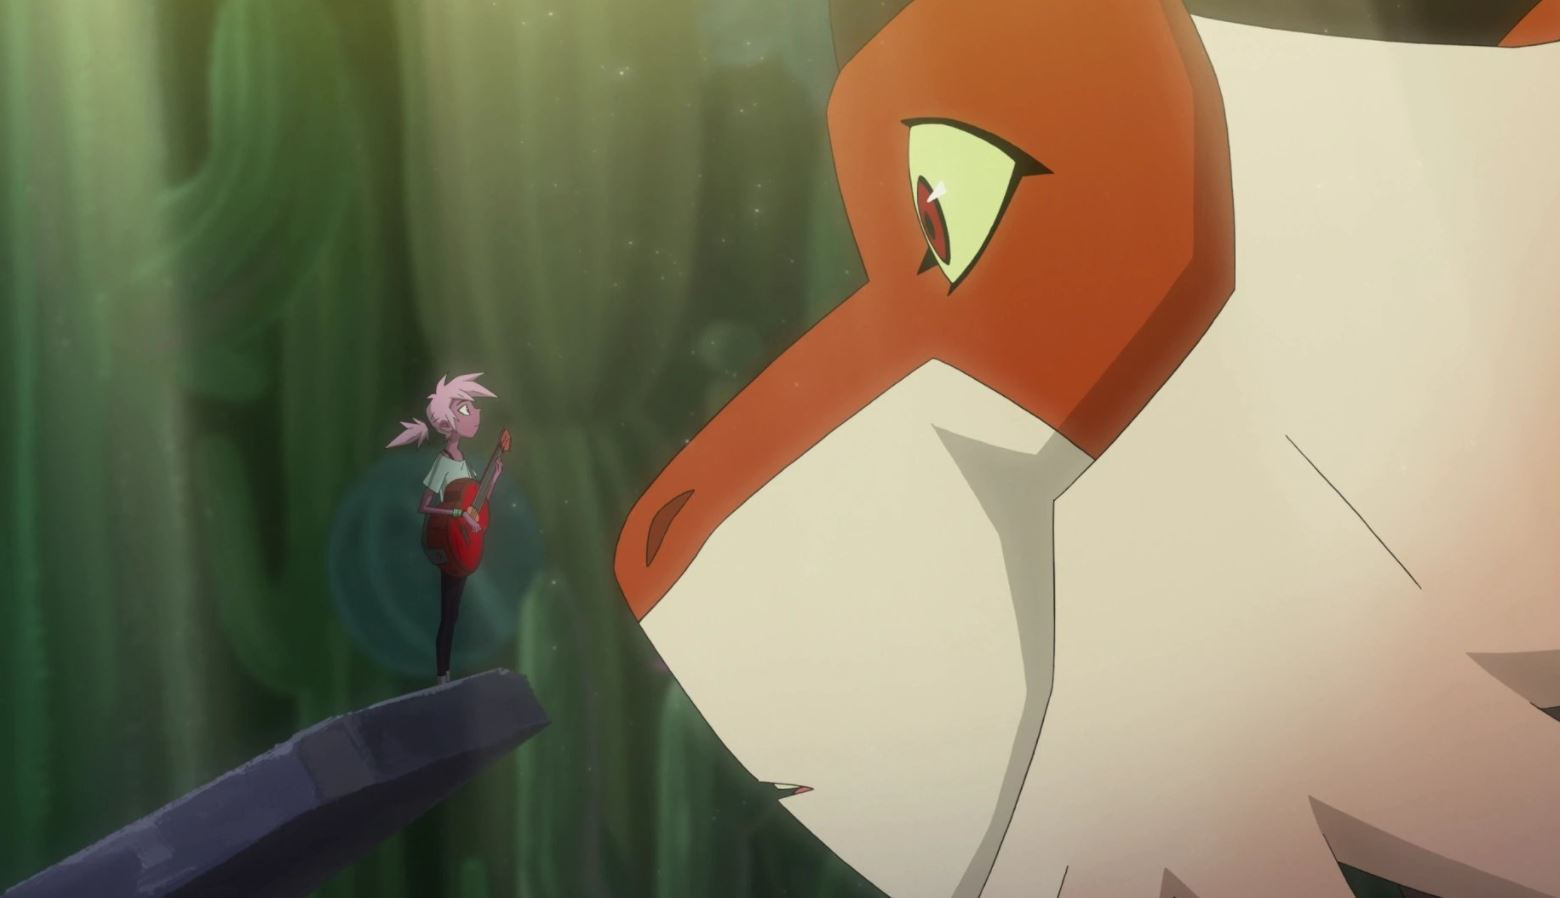 In Kip and the Age of Wonderbeasts, a young woman stands with her guitar in front of the nose of a giant monkey